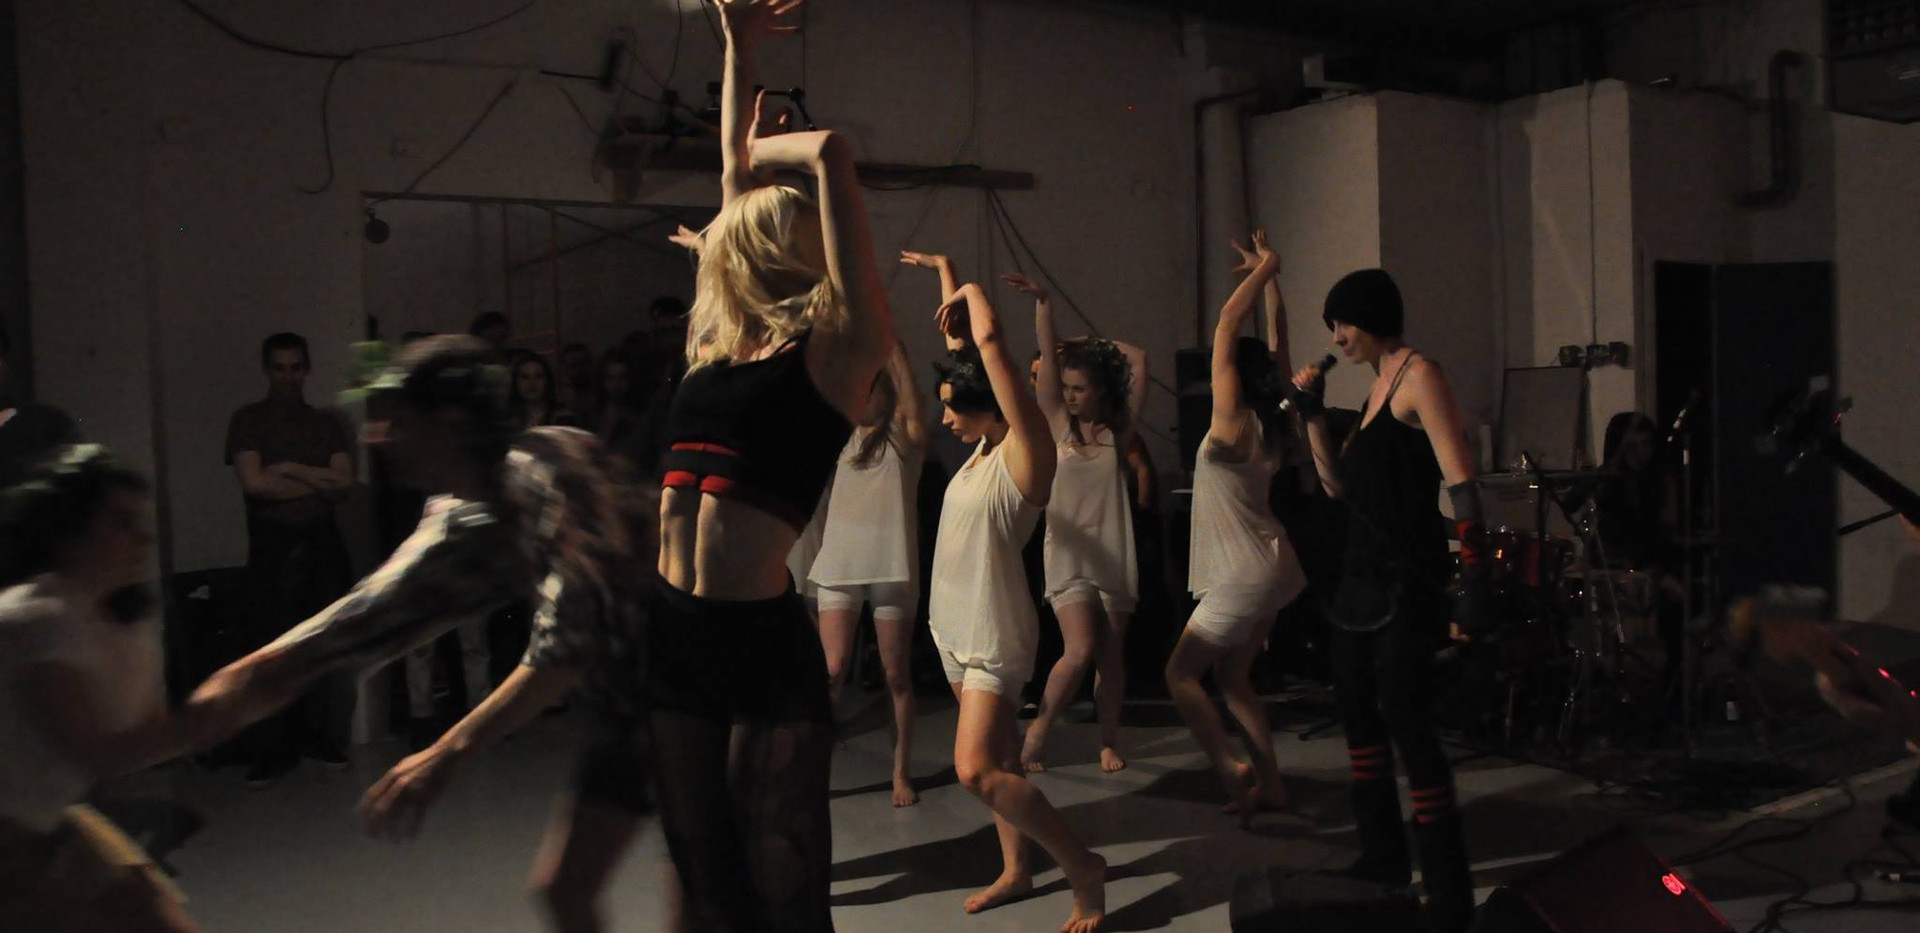 Mollie Downes, Alison Clancy and chorus of dancers in The Irresistable